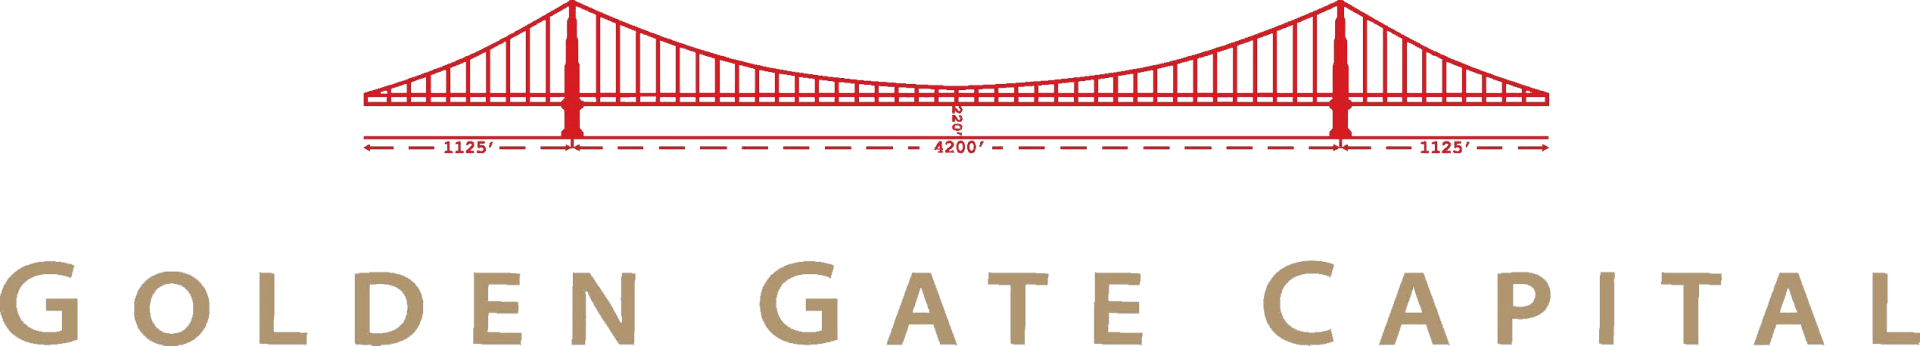 Golden-Gate-Capital-Angus.png